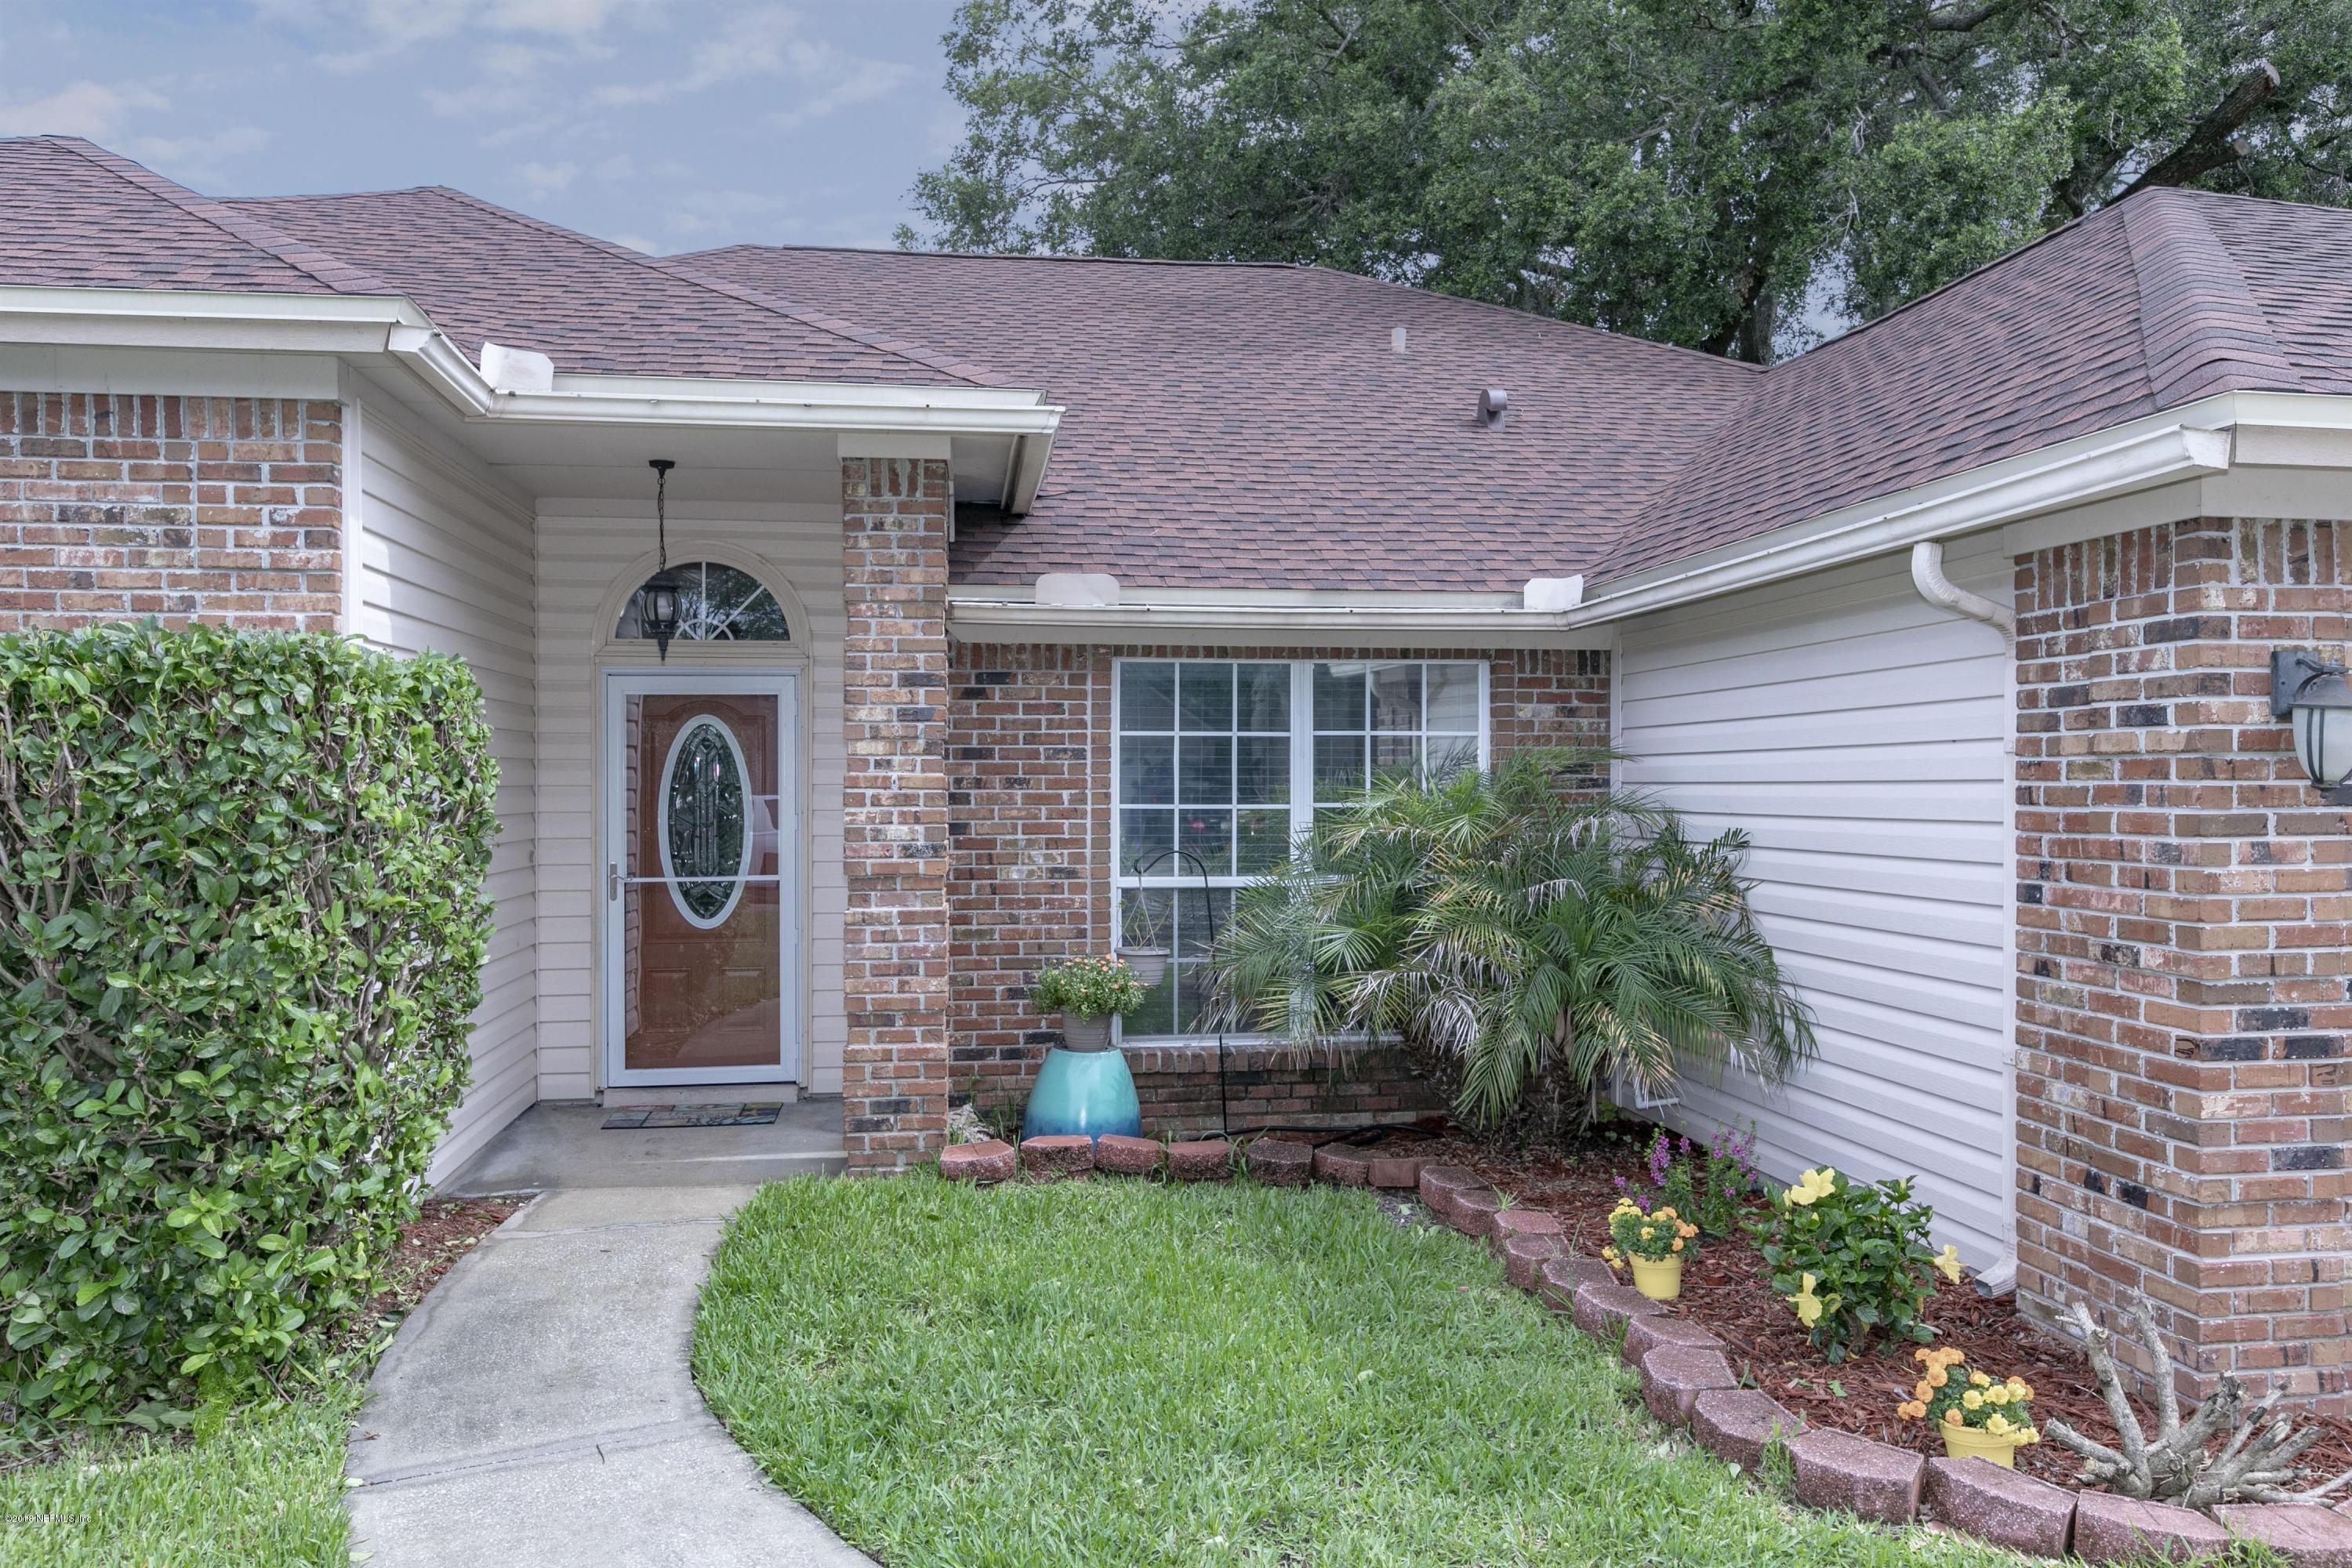 5519 DOVER CREST, JACKSONVILLE, FLORIDA 32258, 4 Bedrooms Bedrooms, ,2 BathroomsBathrooms,Residential - single family,For sale,DOVER CREST,941358